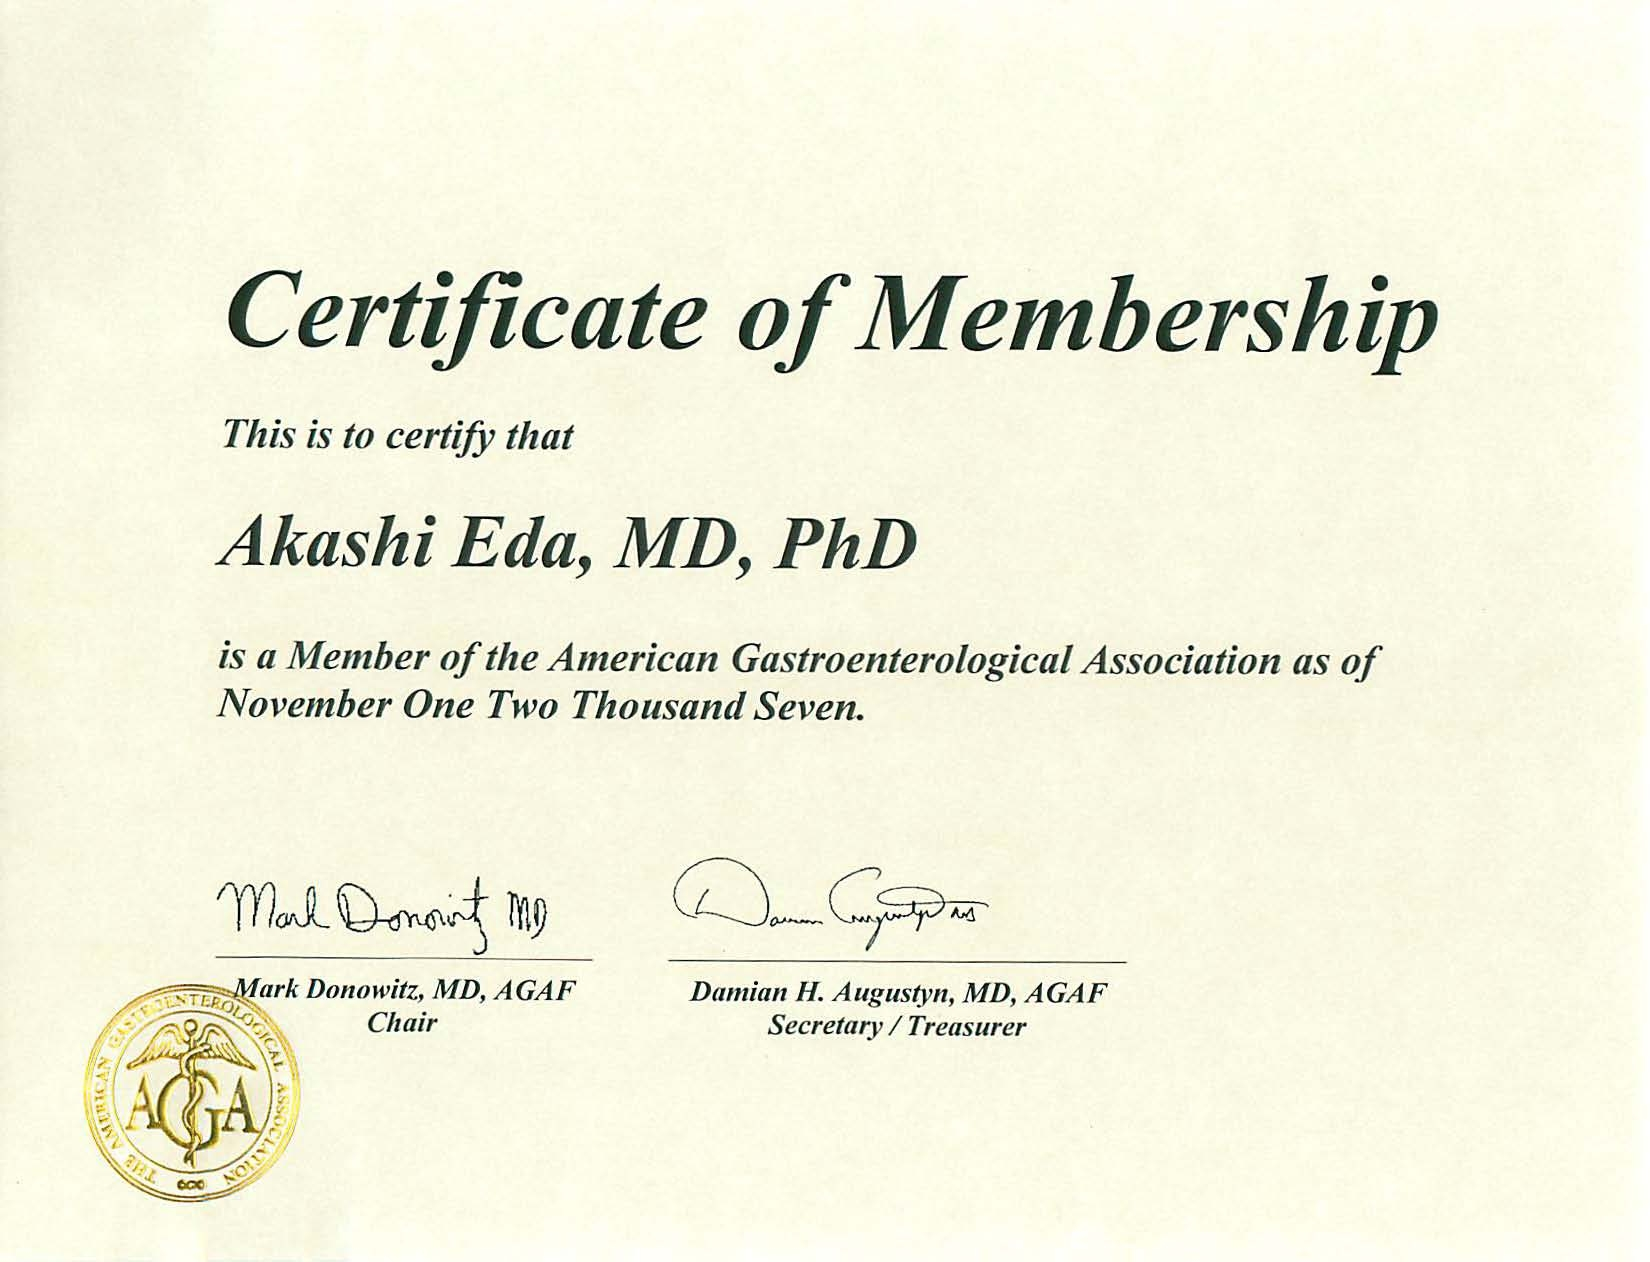 米国消化器病学会(AGA;American Gastroenterological Association)国際会員( International Member)